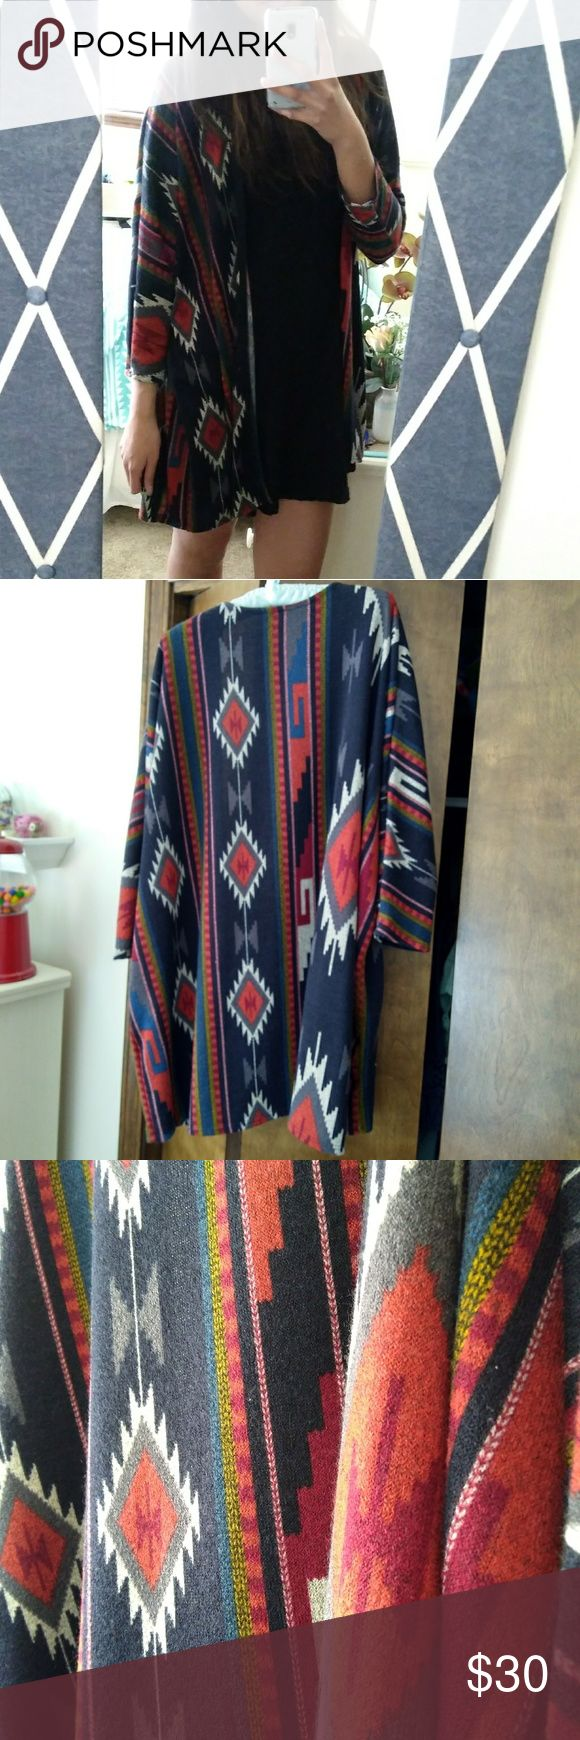 Aztec print cardigan Goes good with jeans, capris, skirts, and dresses! Never worn! Fits a range of sizes. Vanilla Bay Sweaters Cardigans